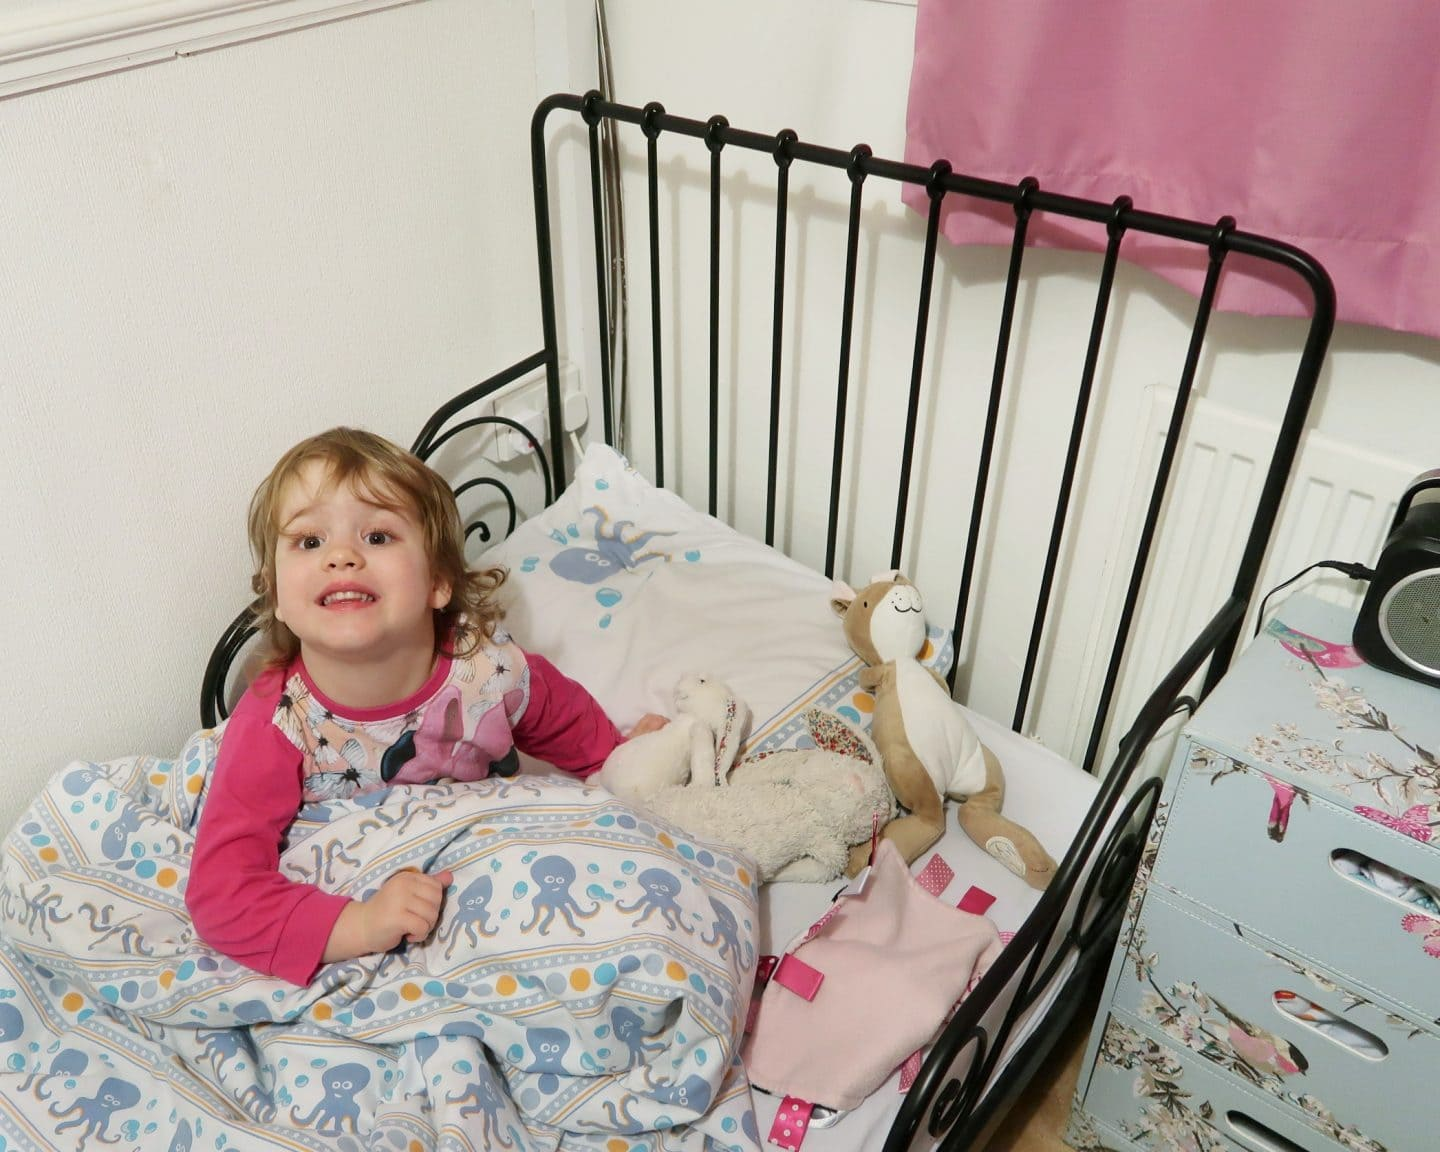 A little girl in her toddler bed surrounded by stuffed animals - for night time potty training tips